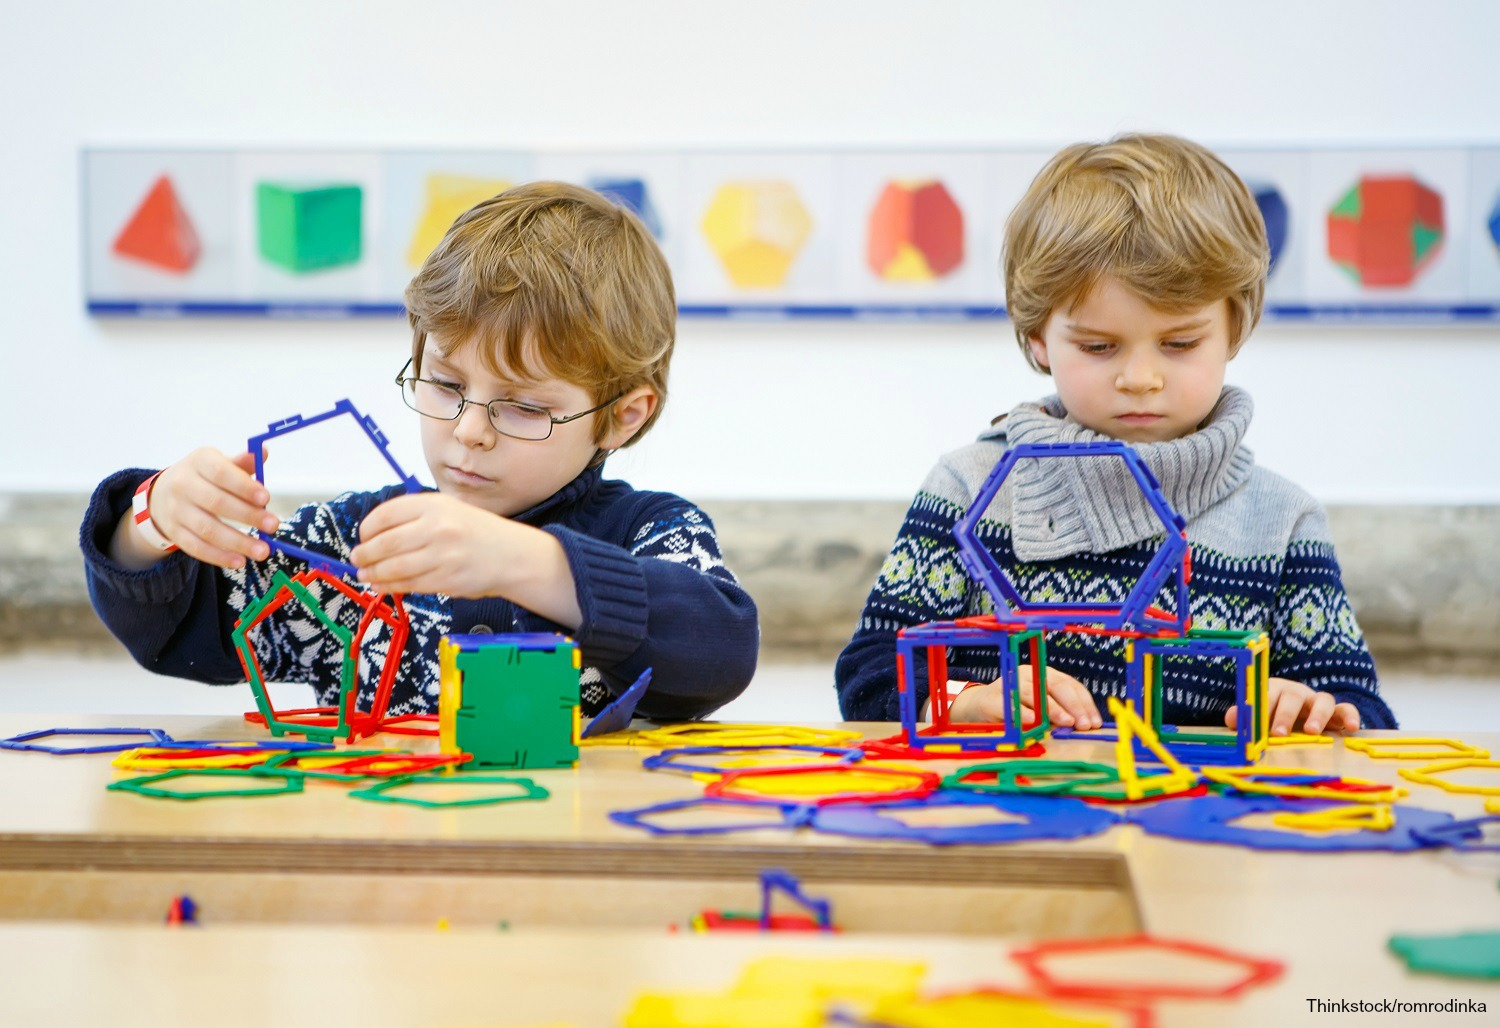 Kids playing at desk with learning toys